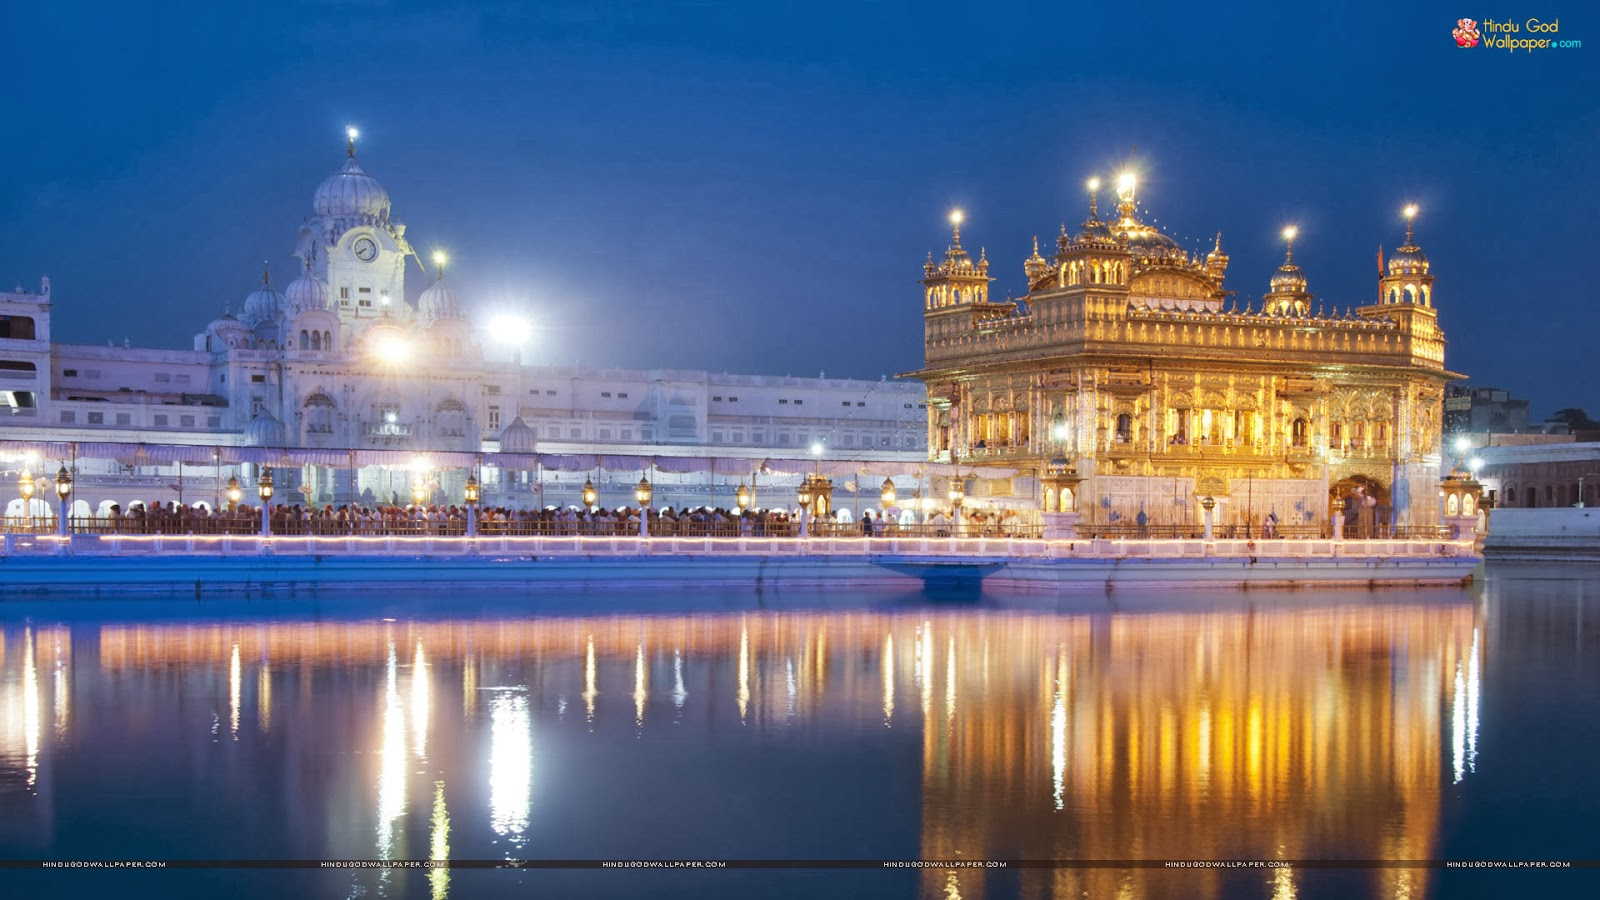 GOLDEN TEMPLE | Hindu God Wallpapers Download